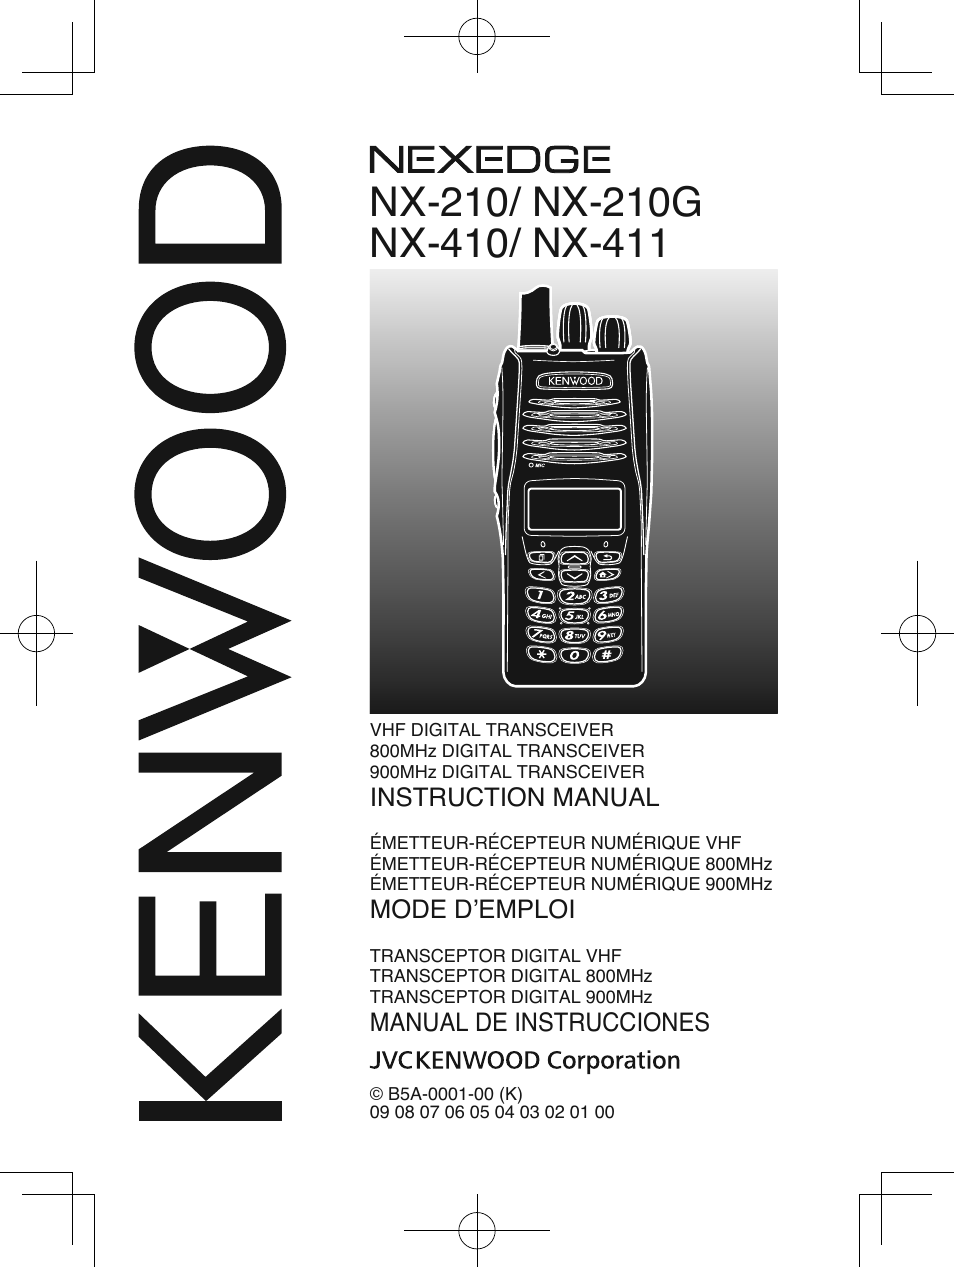 kenwood nx 210g user manual 48 pages rh manualsdir com Kenwood Radio Accessories kenwood nx-210 service manual